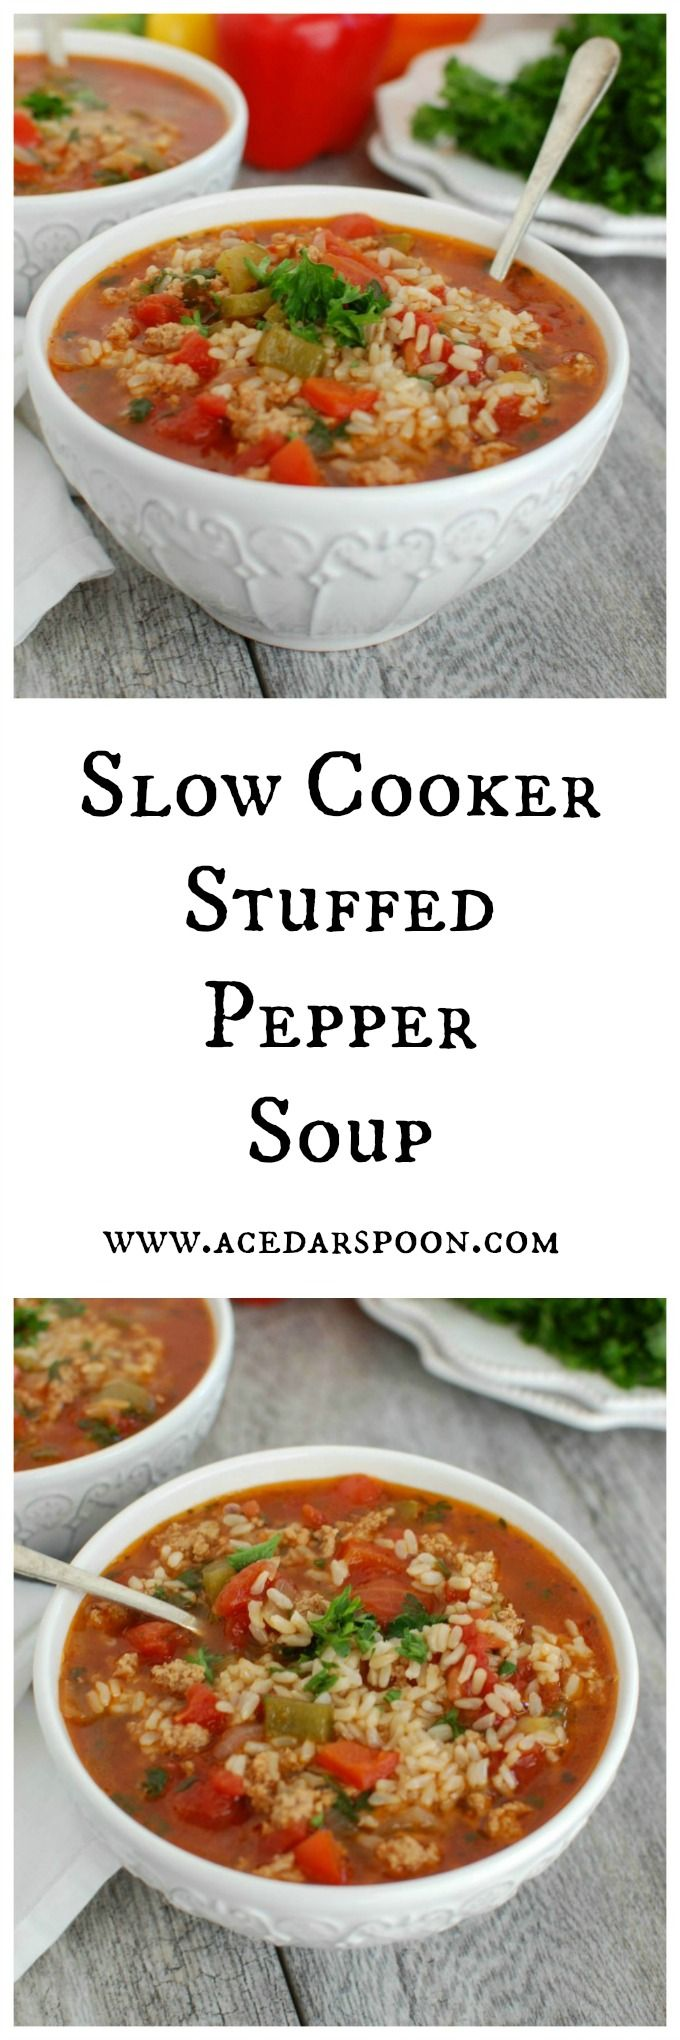 Slow Cooker Stuffed Pepper Soup takes the stuffed peppers you know and love and puts it into a soup. This soup mixes together ground turkey, bell peppers, tomatoes, spices and brown rice to create a hearty soup perfect for the colder months // A Cedar Spoon